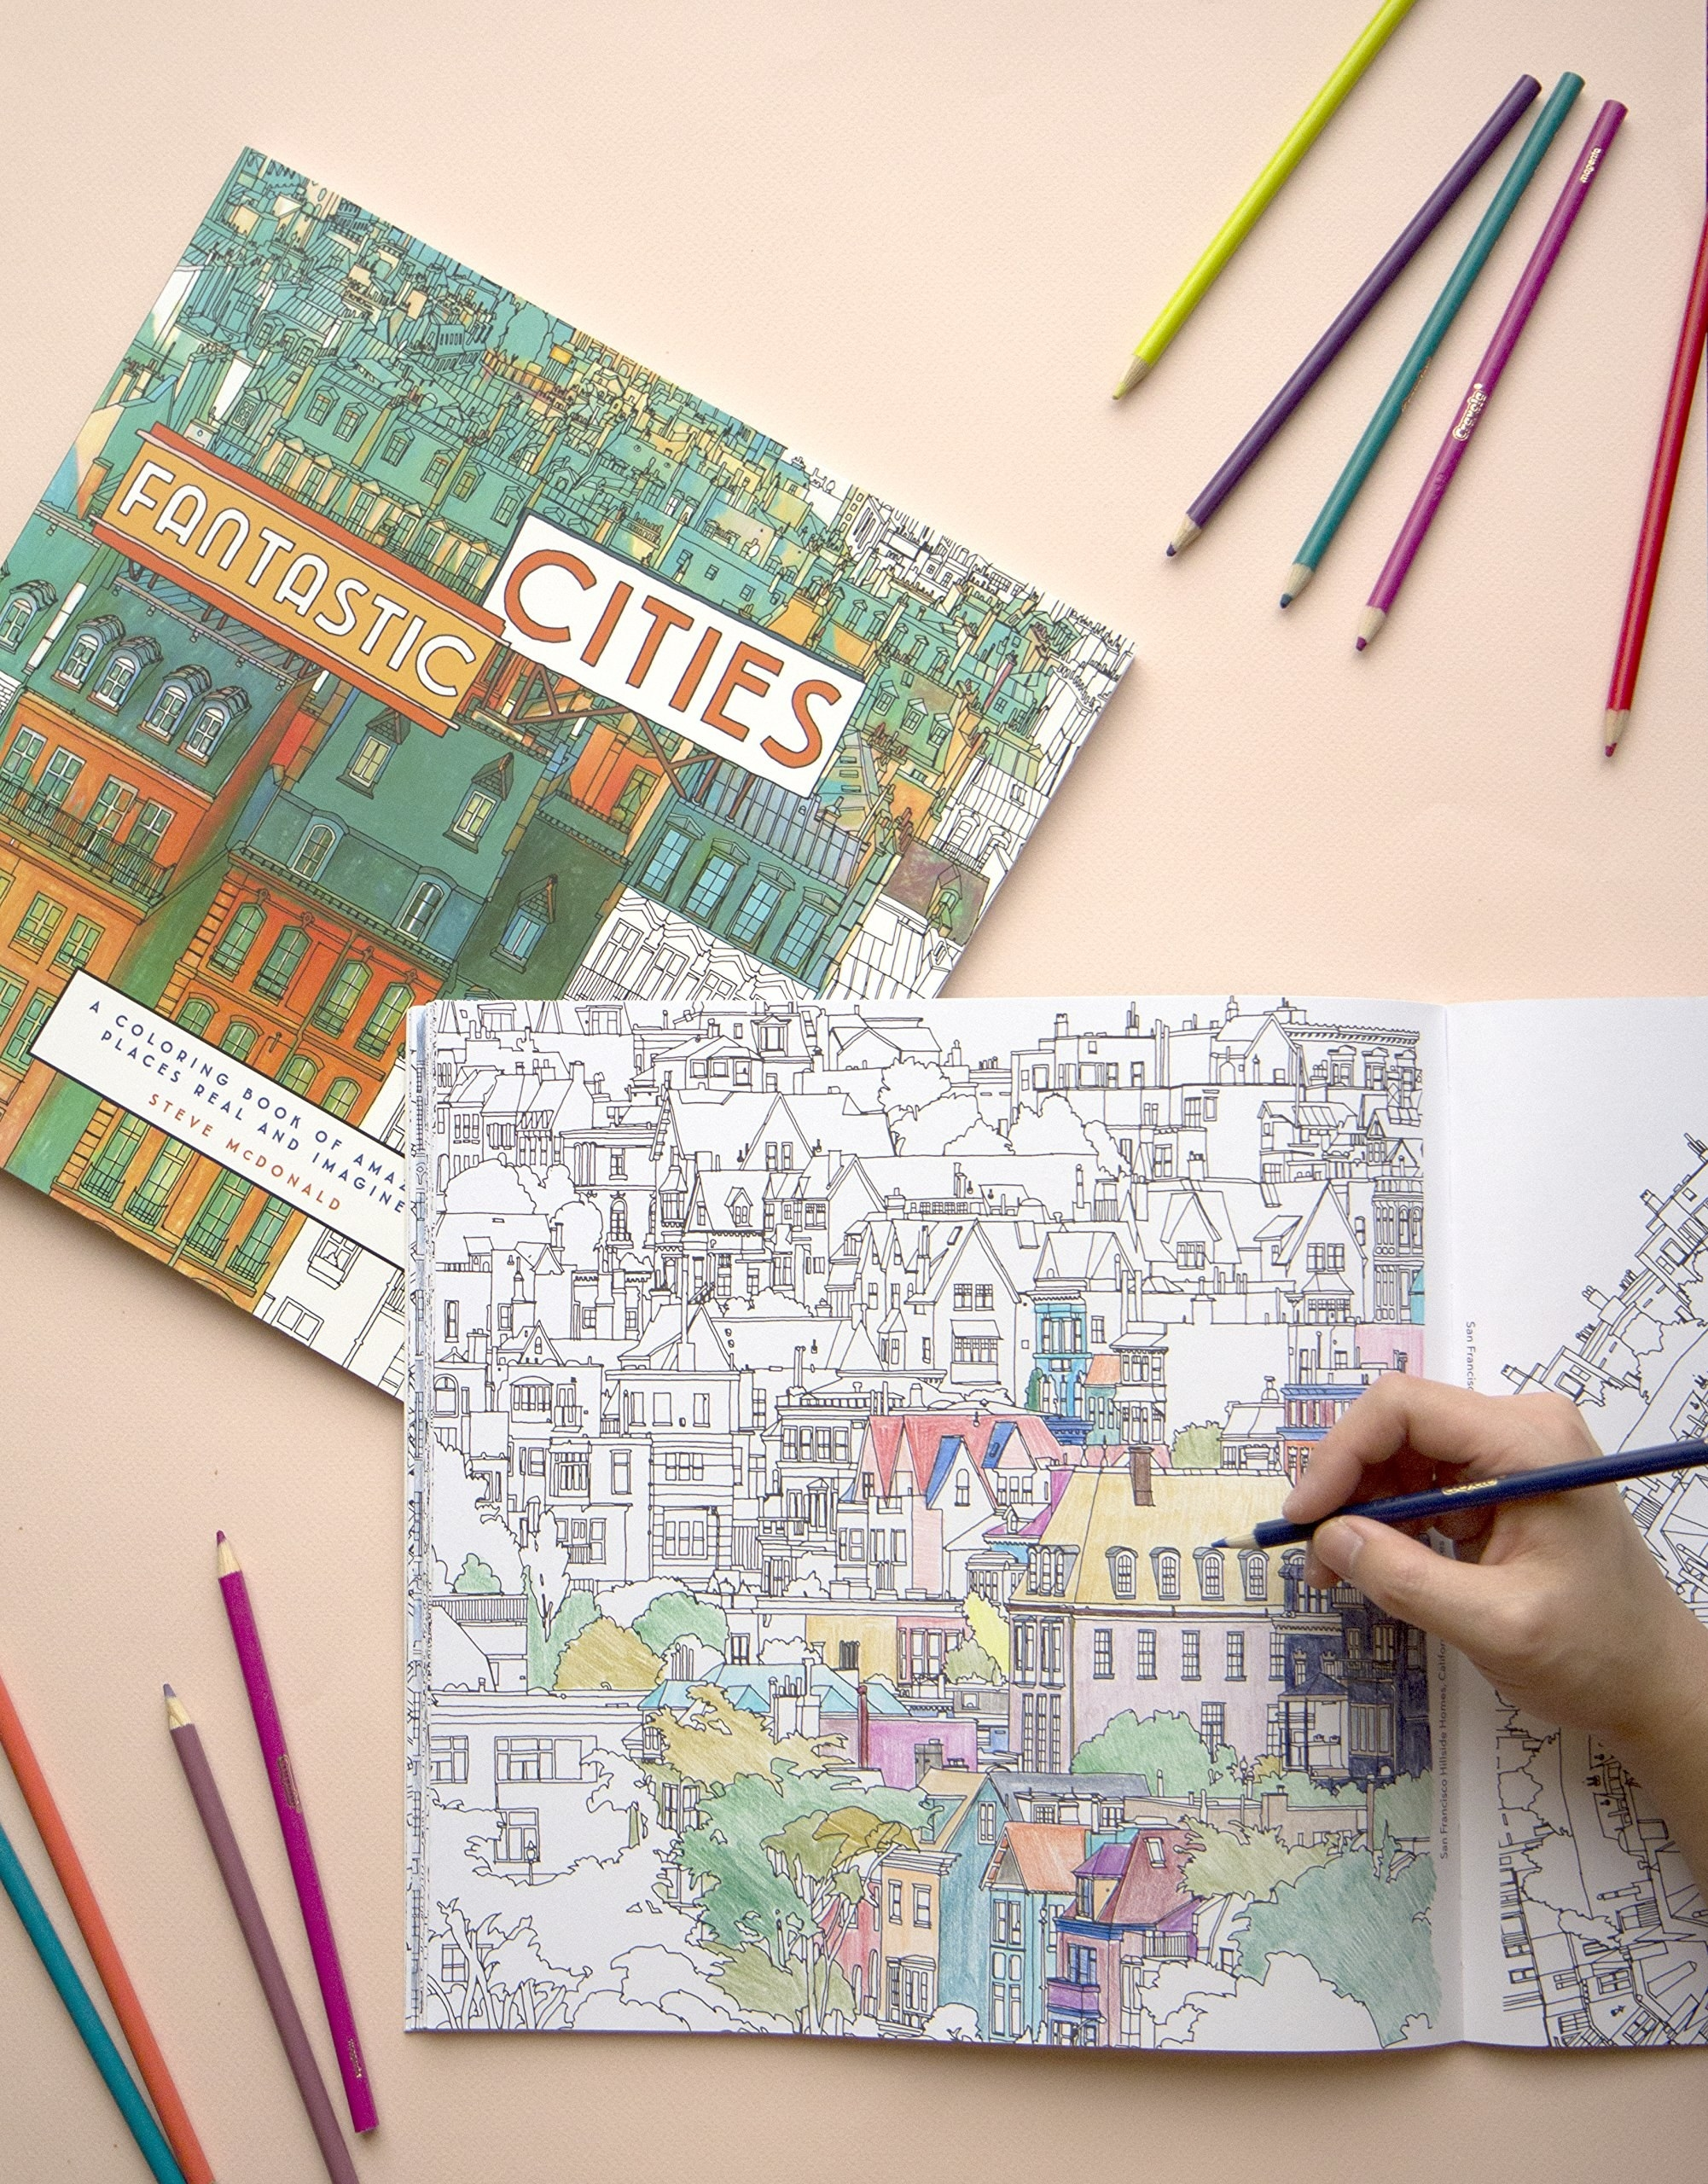 Someone coloring in the Fantastic Cities coloring book.